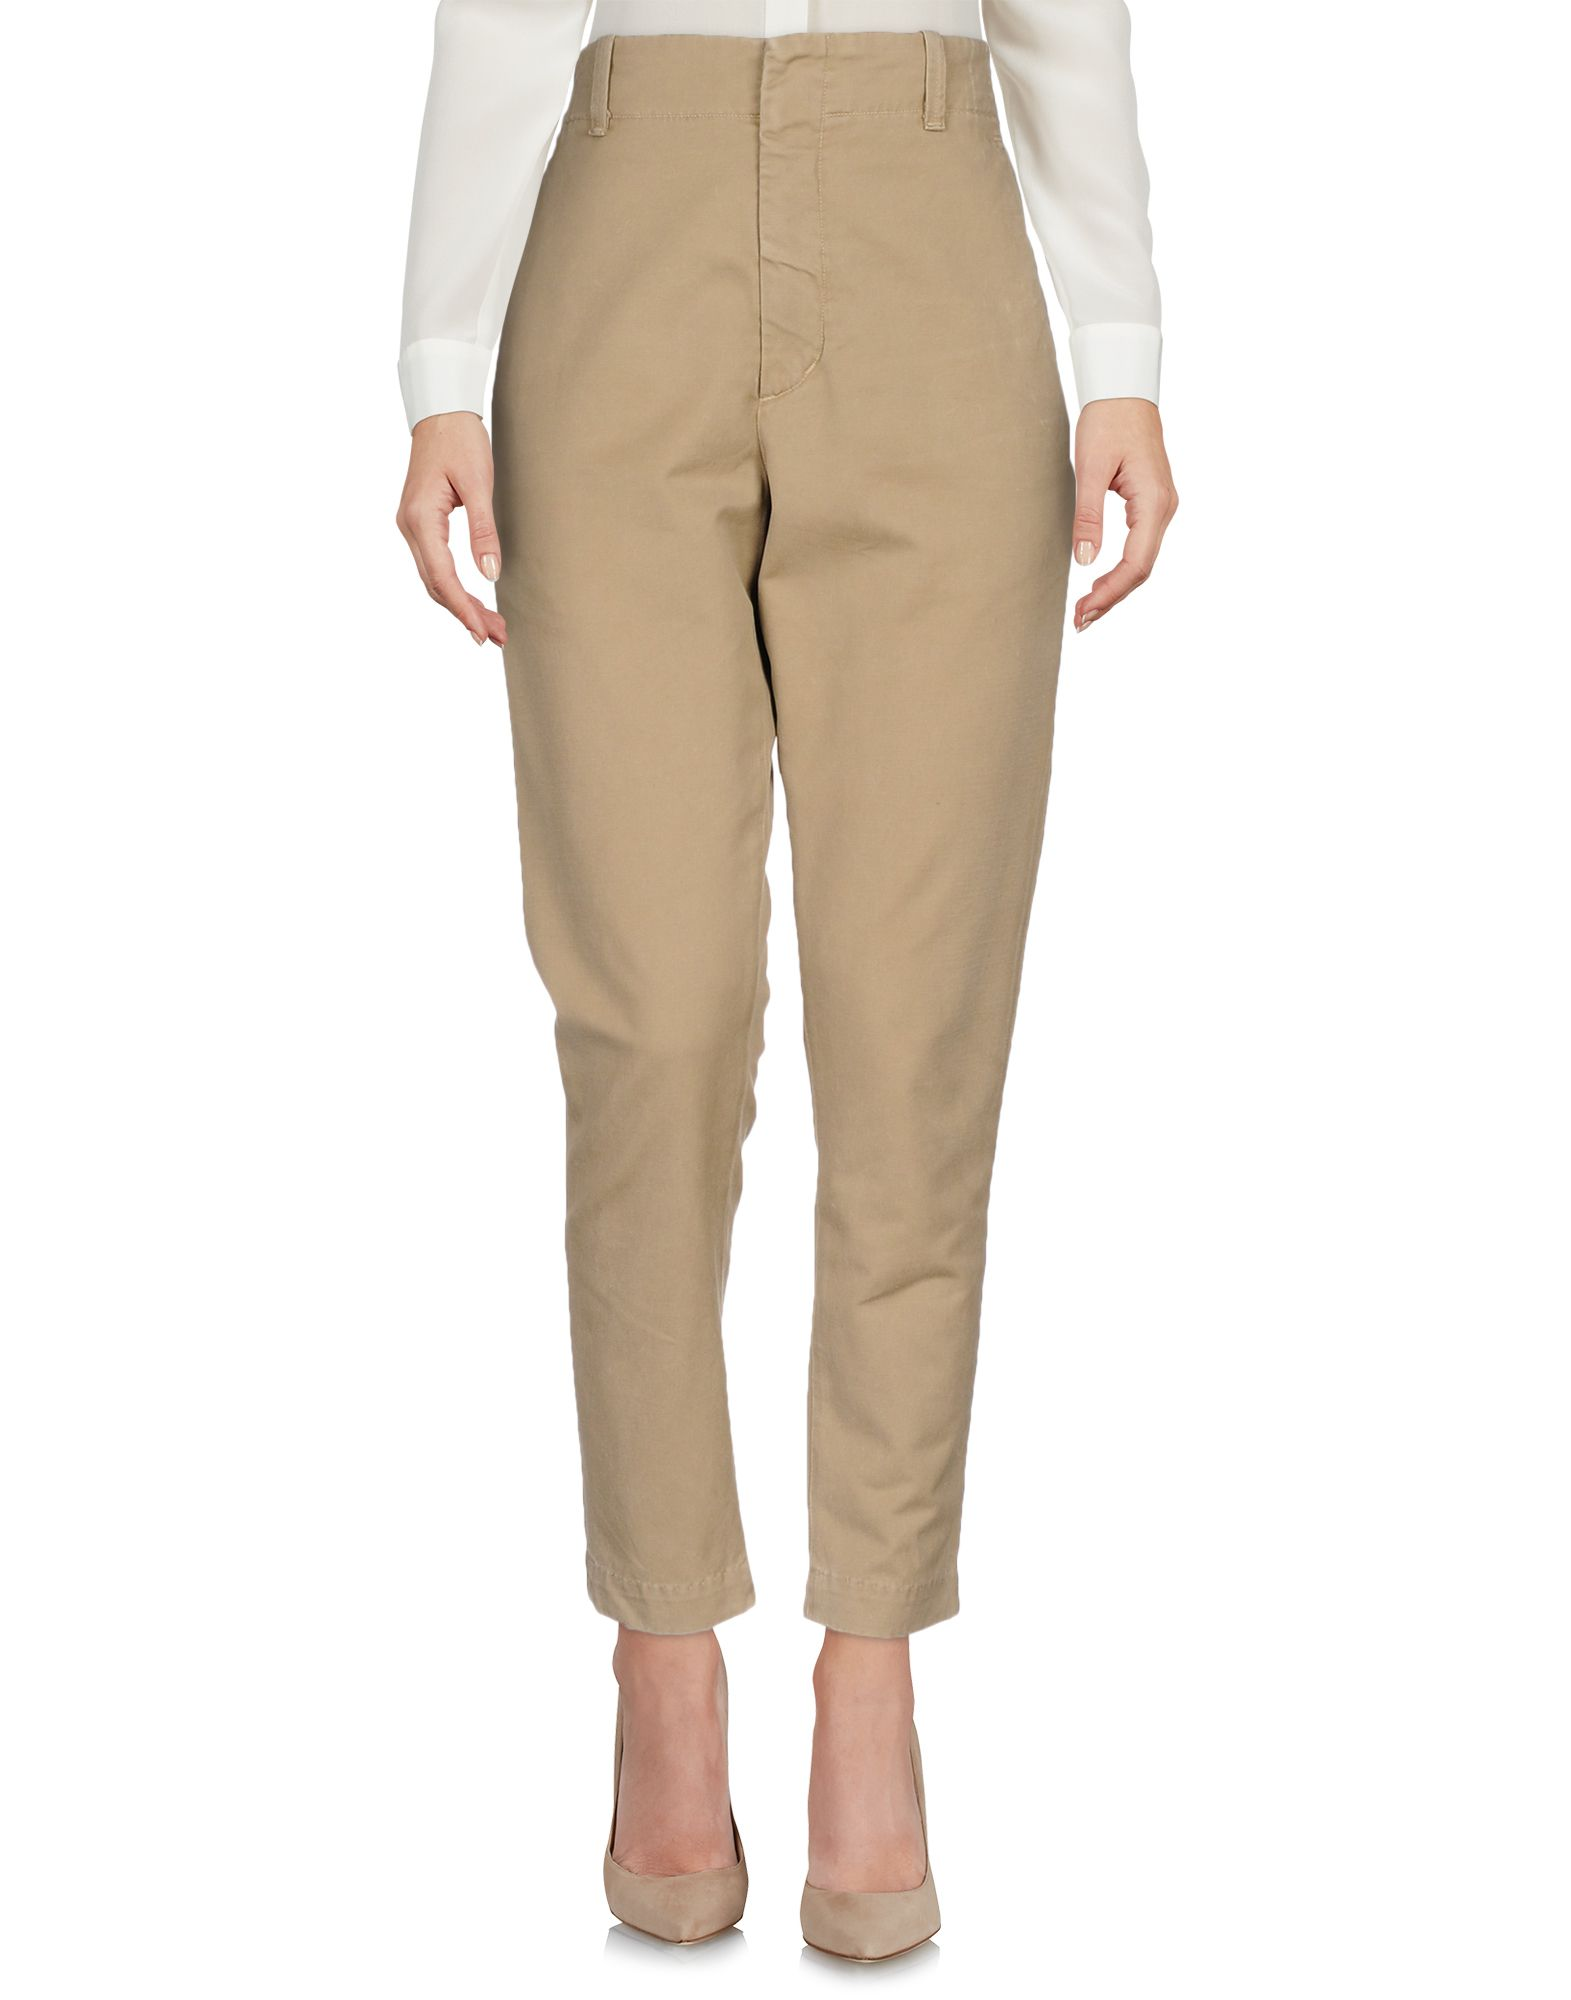 Pantalone Citizens Of Humanity Donna - Acquista online su ymW6G72G